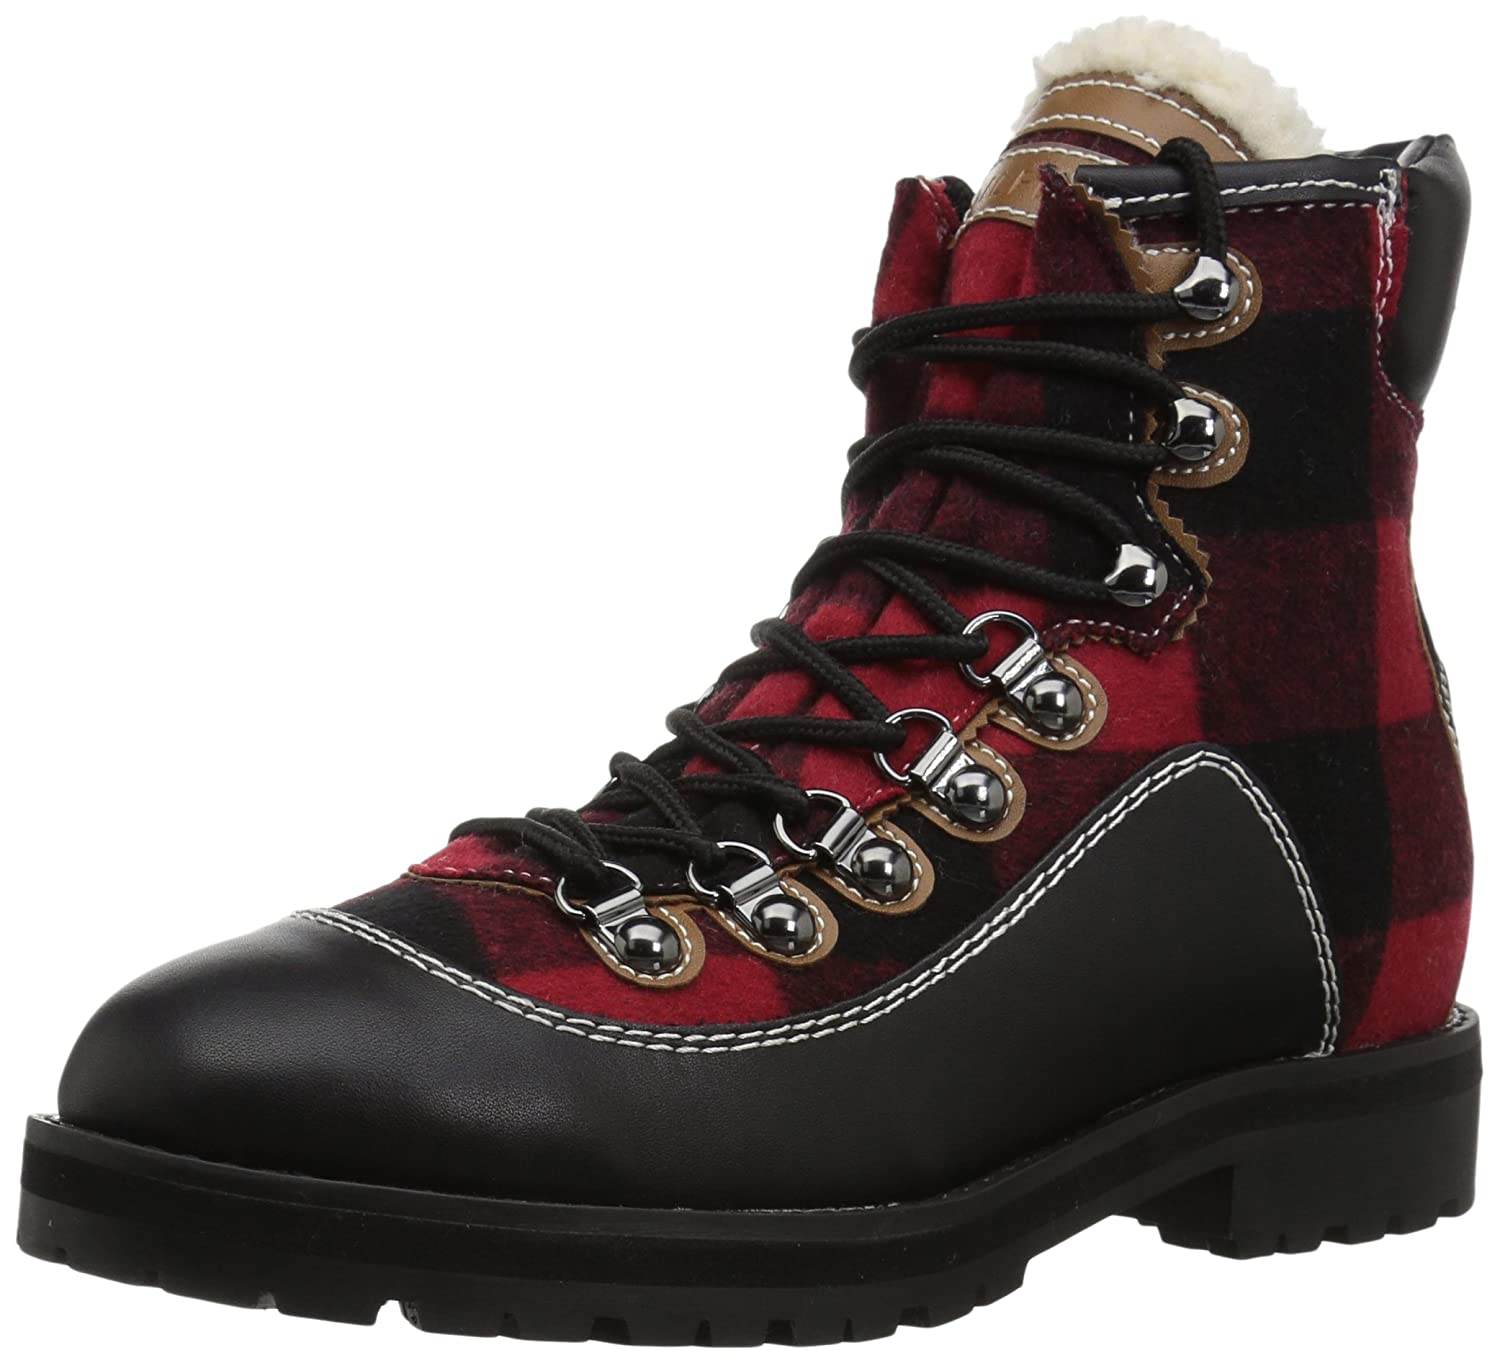 Tommy Hilfiger Women's Tonny Hiking Boot B06XVJTL1N 10.5 B(M) US|Red Plaid